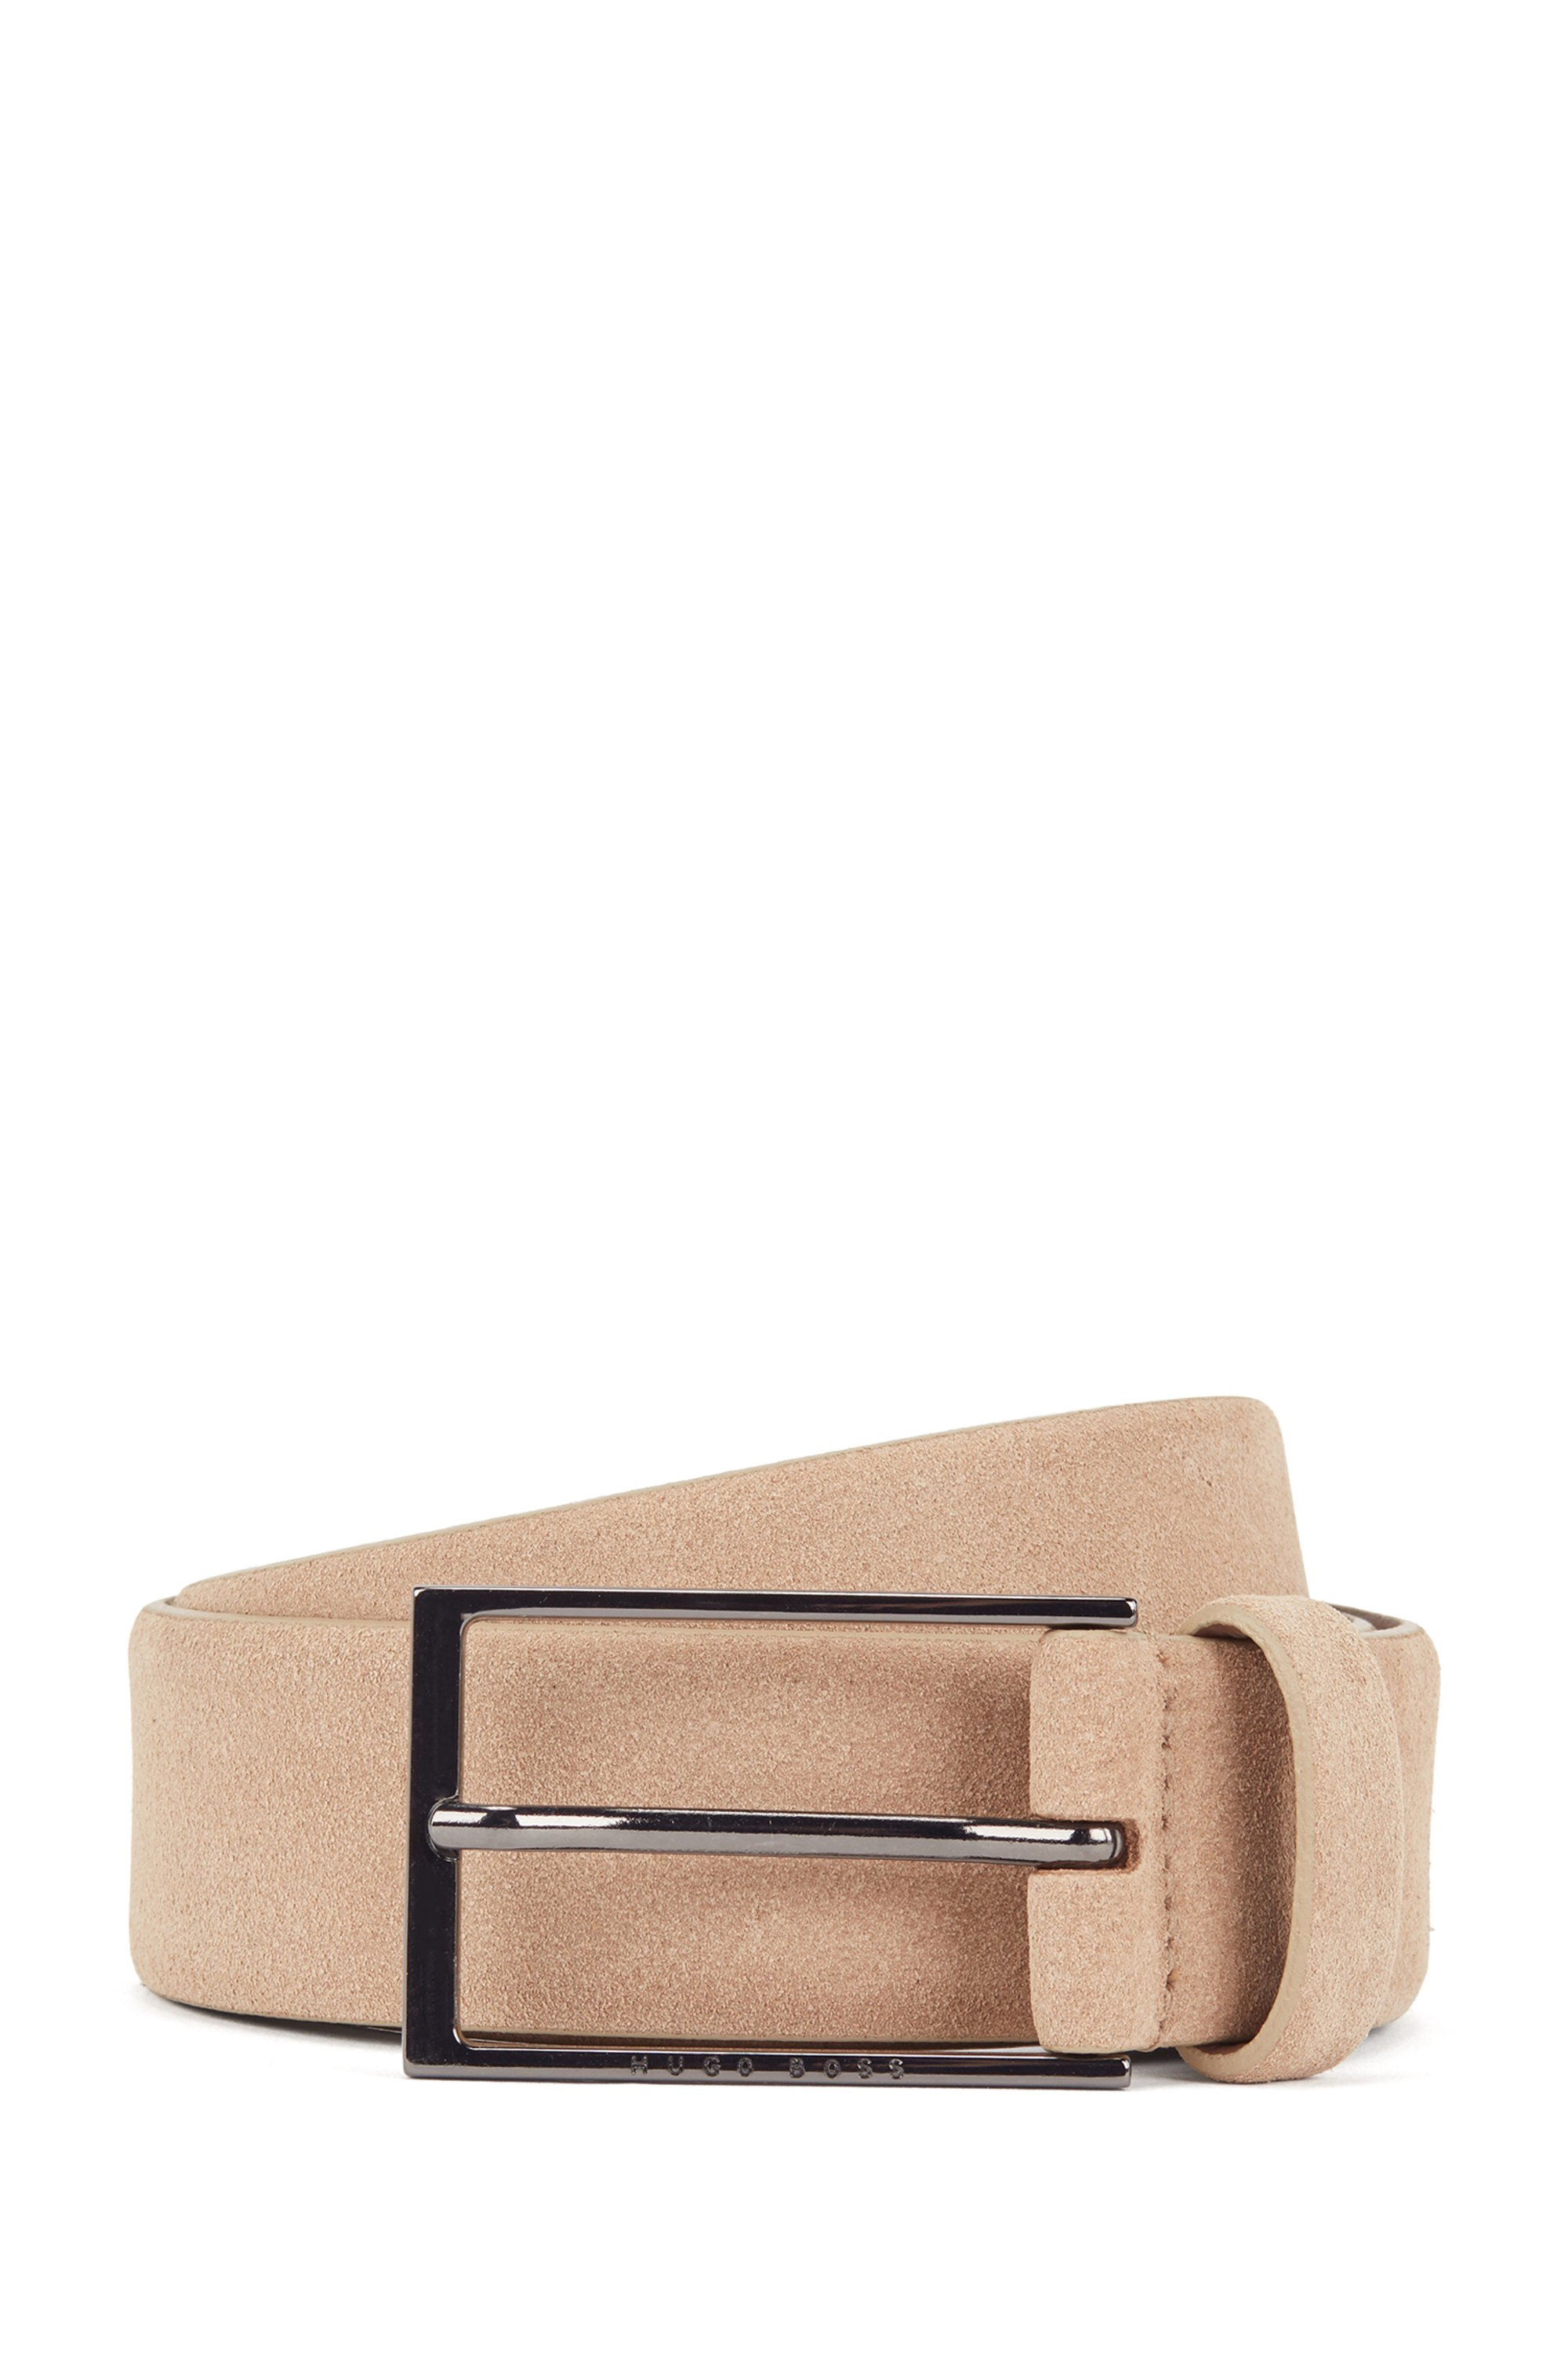 Suede belt with polished gunmetal buckle, Brown